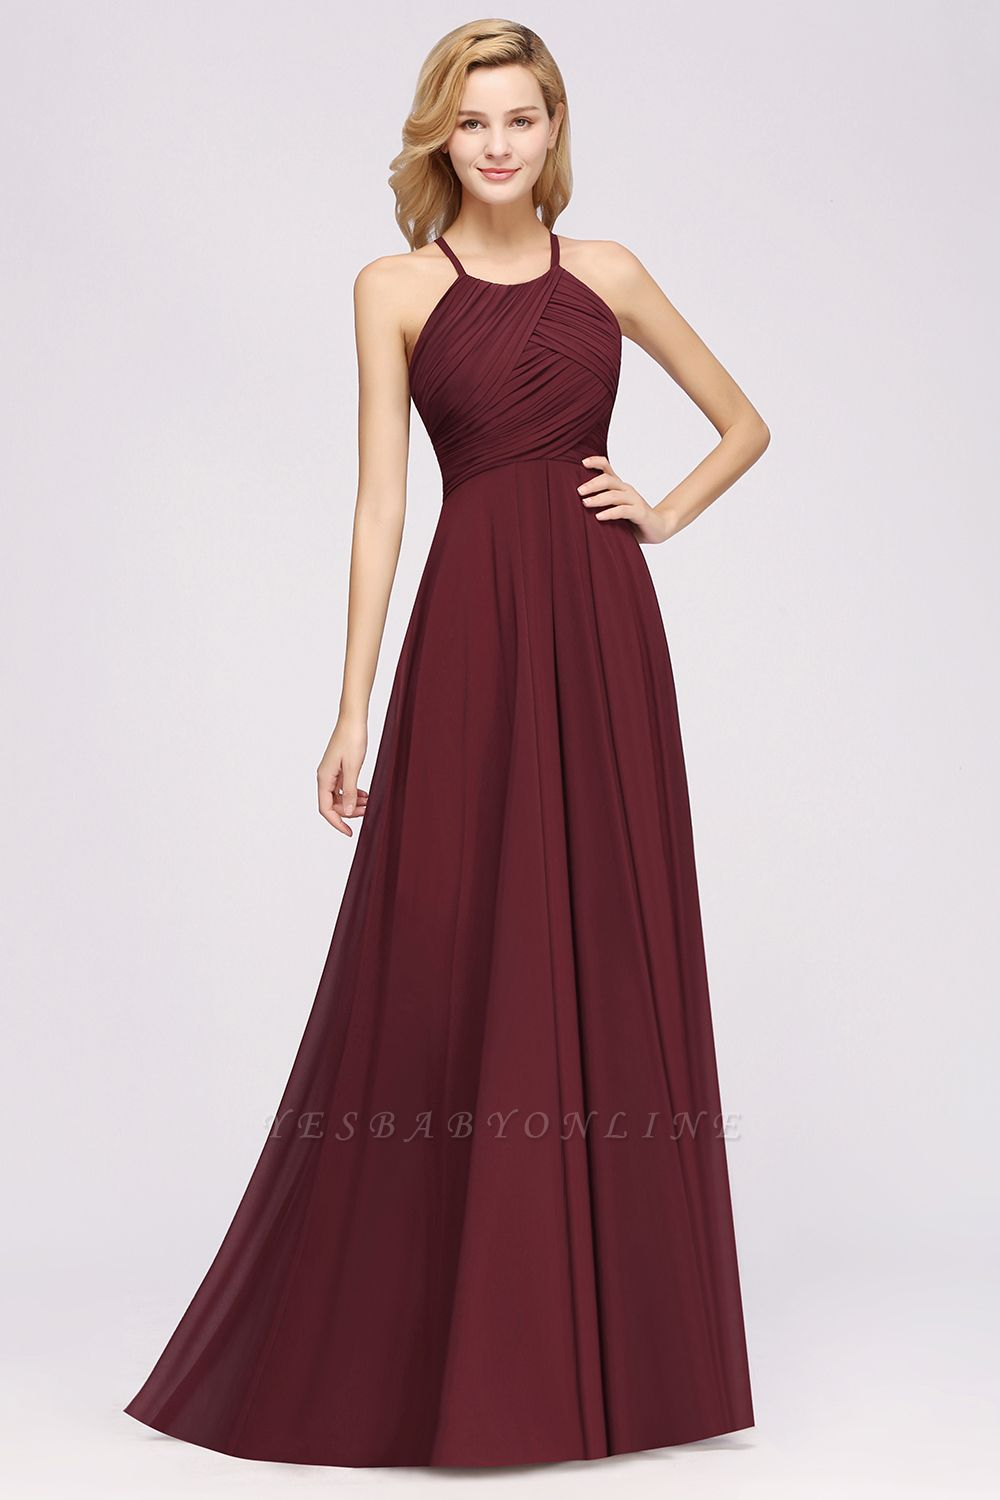 A-Line  Halter Ruffles Floor-Length Bridesmaid Dress